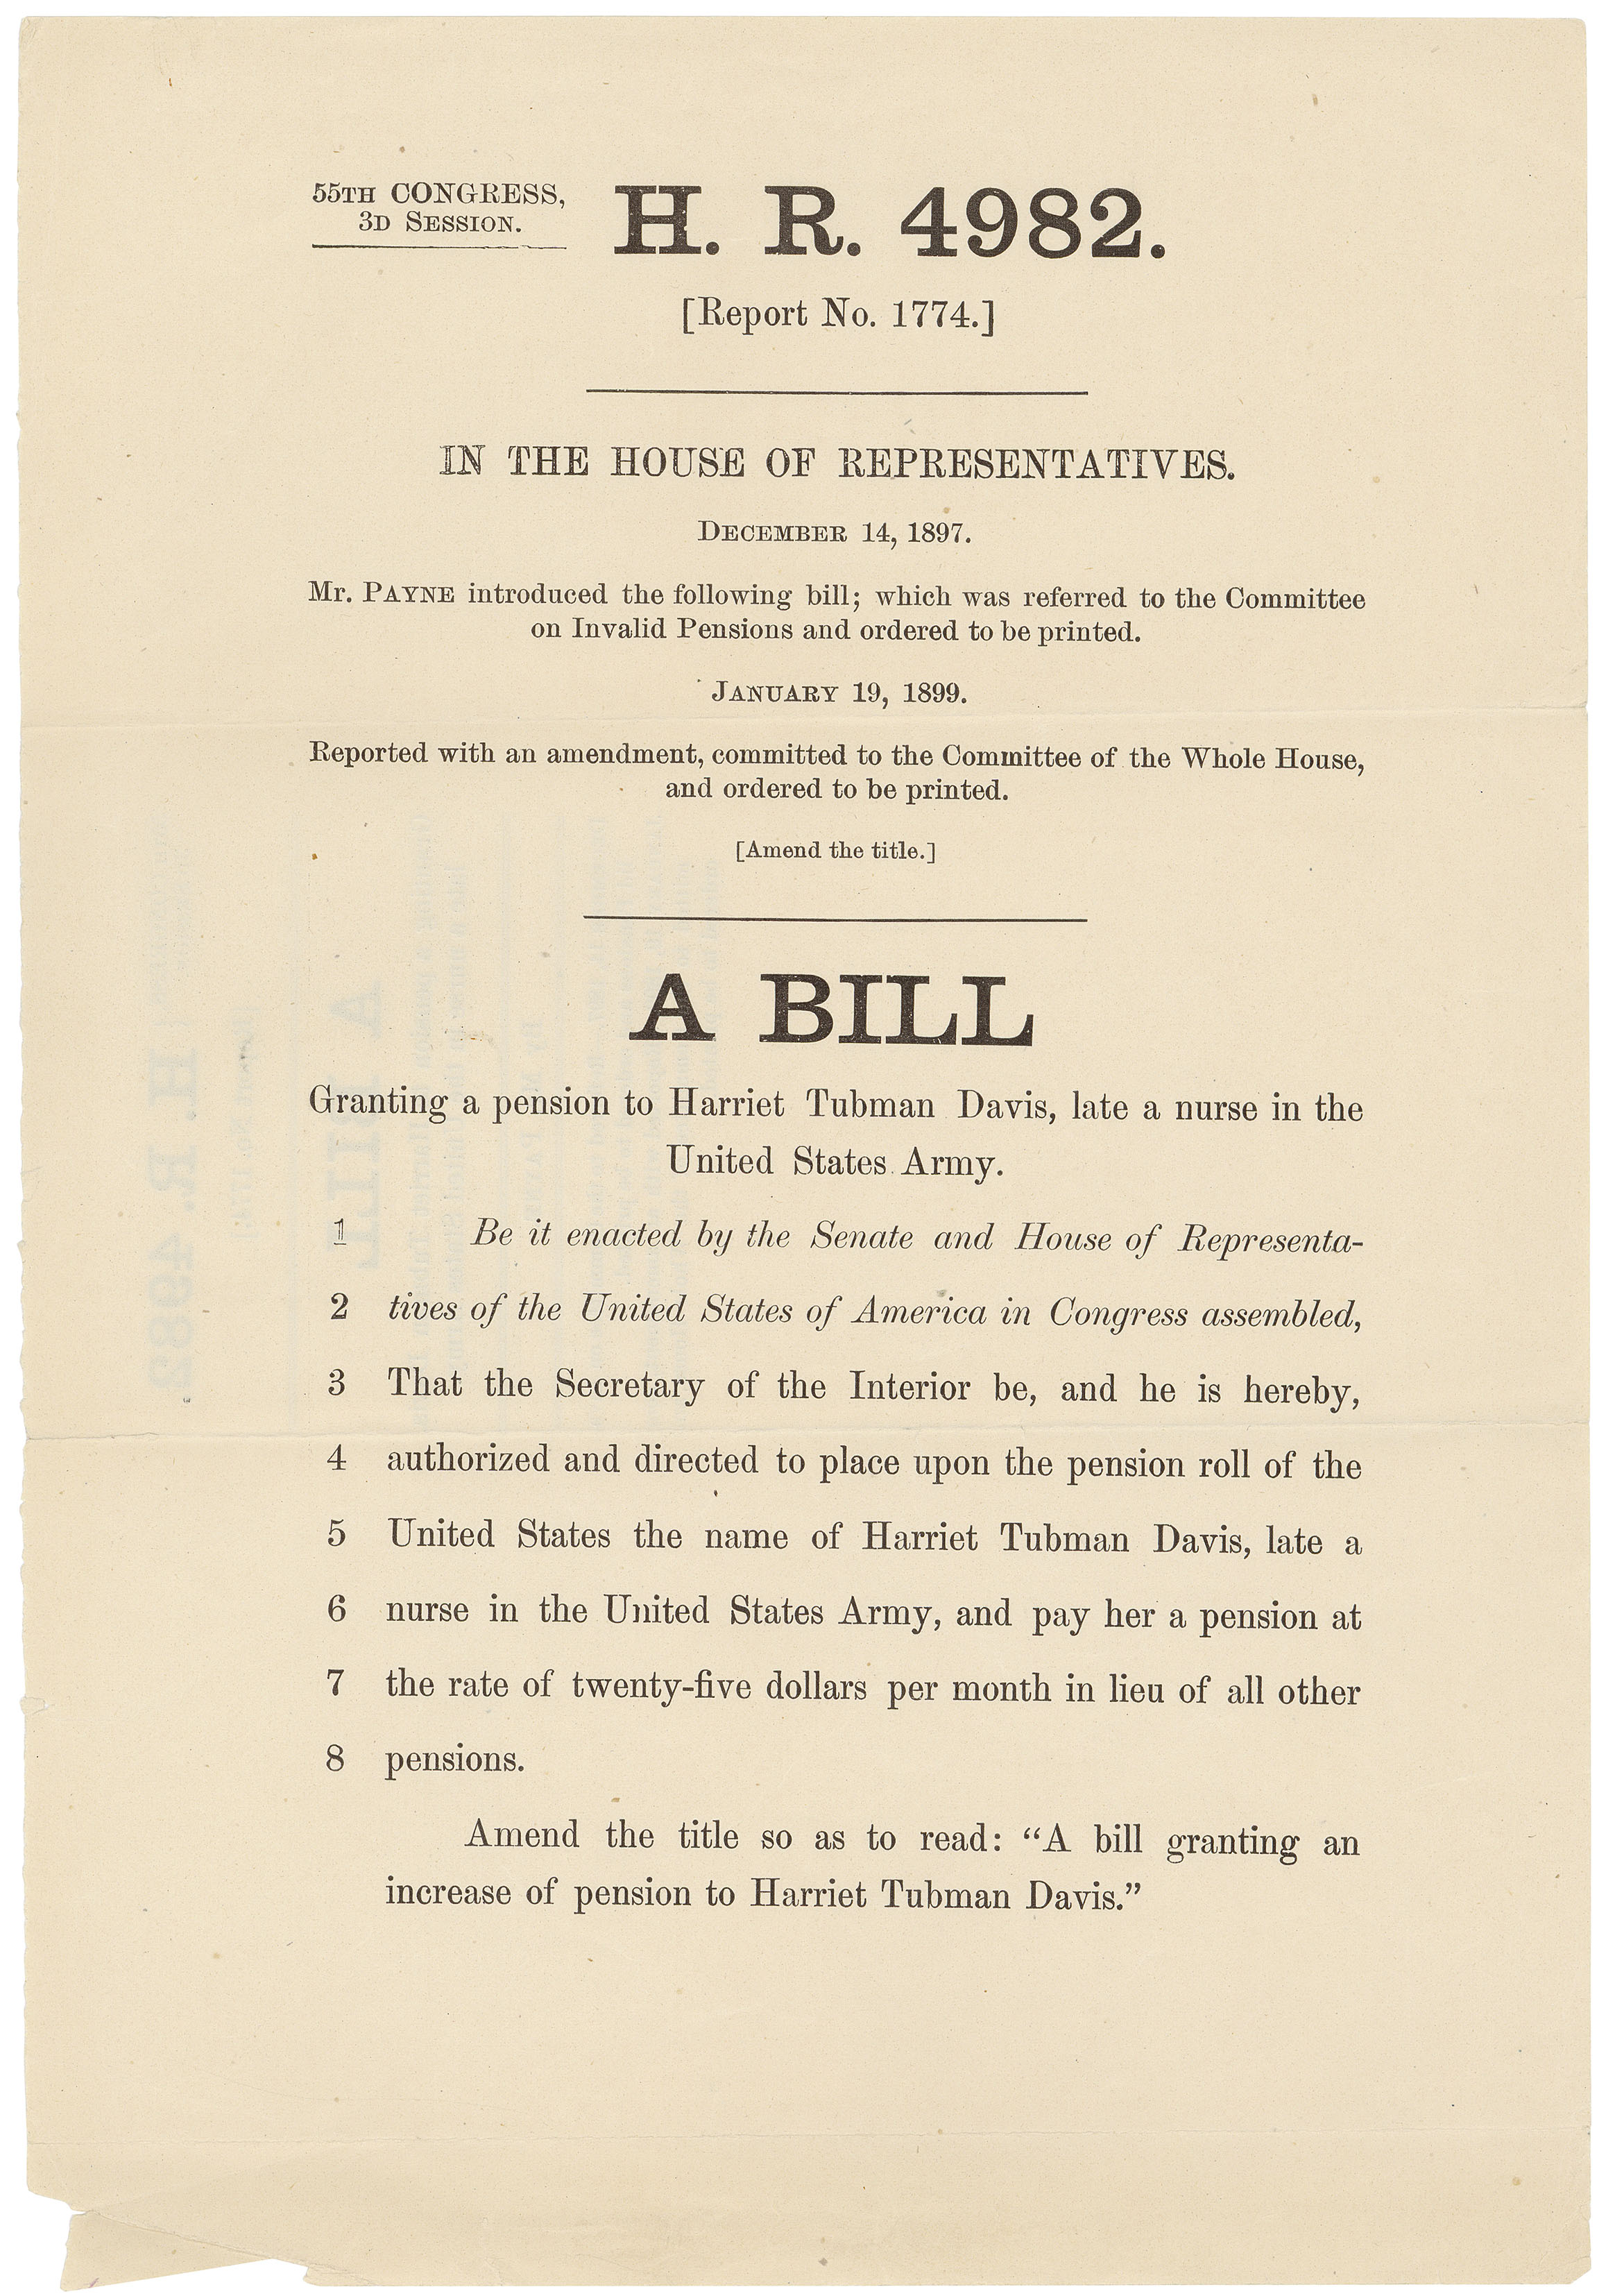 worksheet Harriet Tubman Worksheets congress and harriet tubmans claim for a pension education updates h r 4982 bill granting to tubman davis january 19